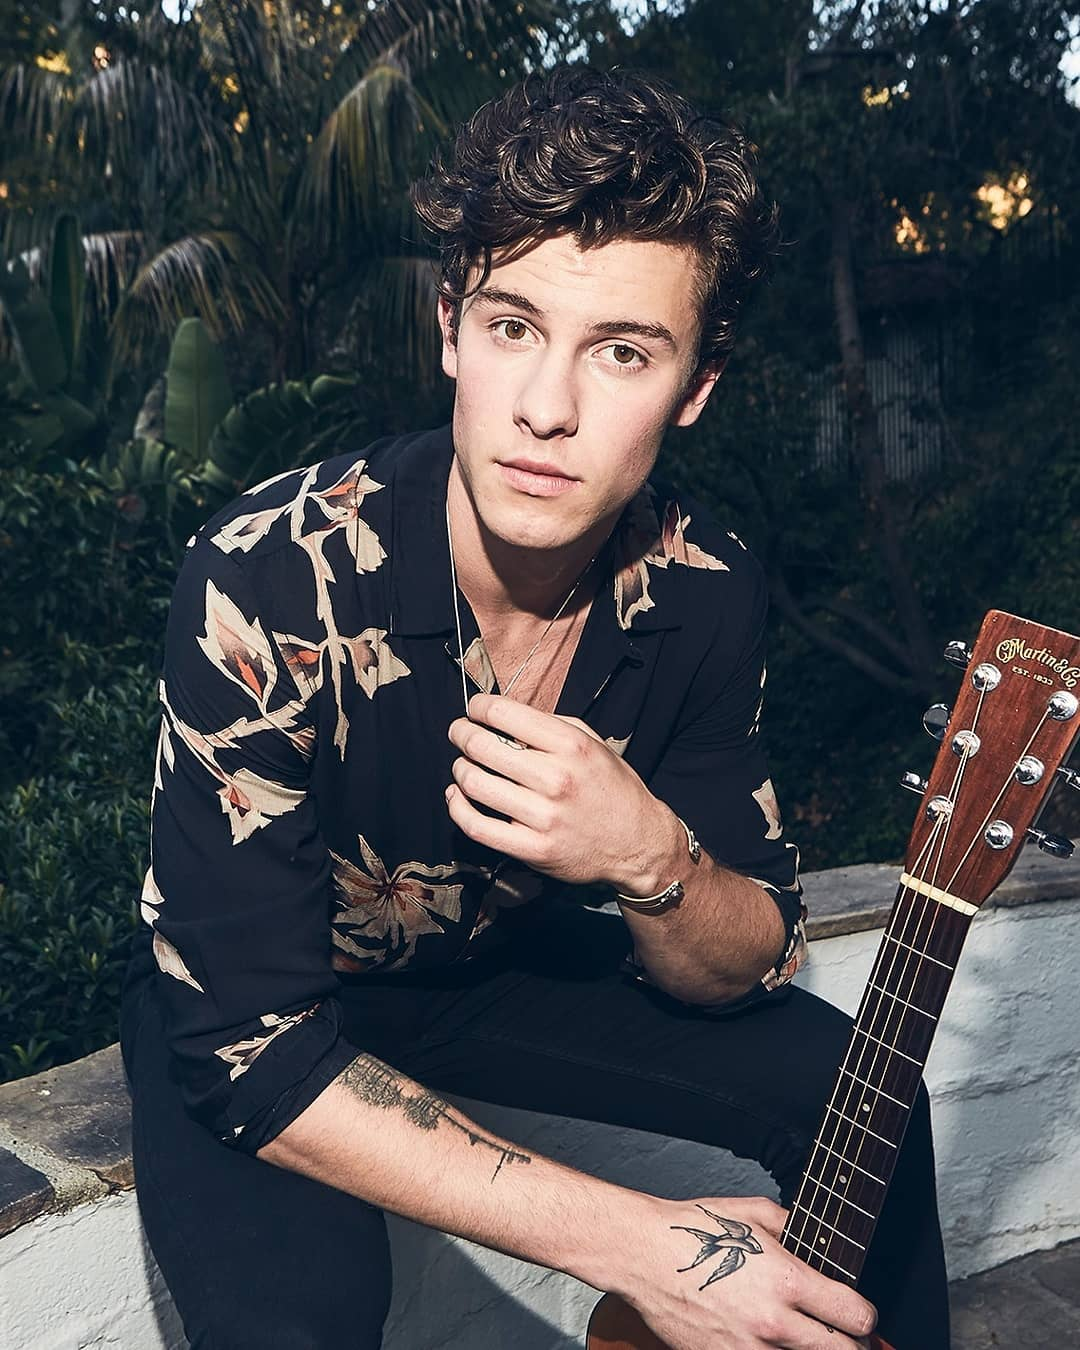 27 Shawn Mendes 2019 Wallpapers On Wallpapersafari